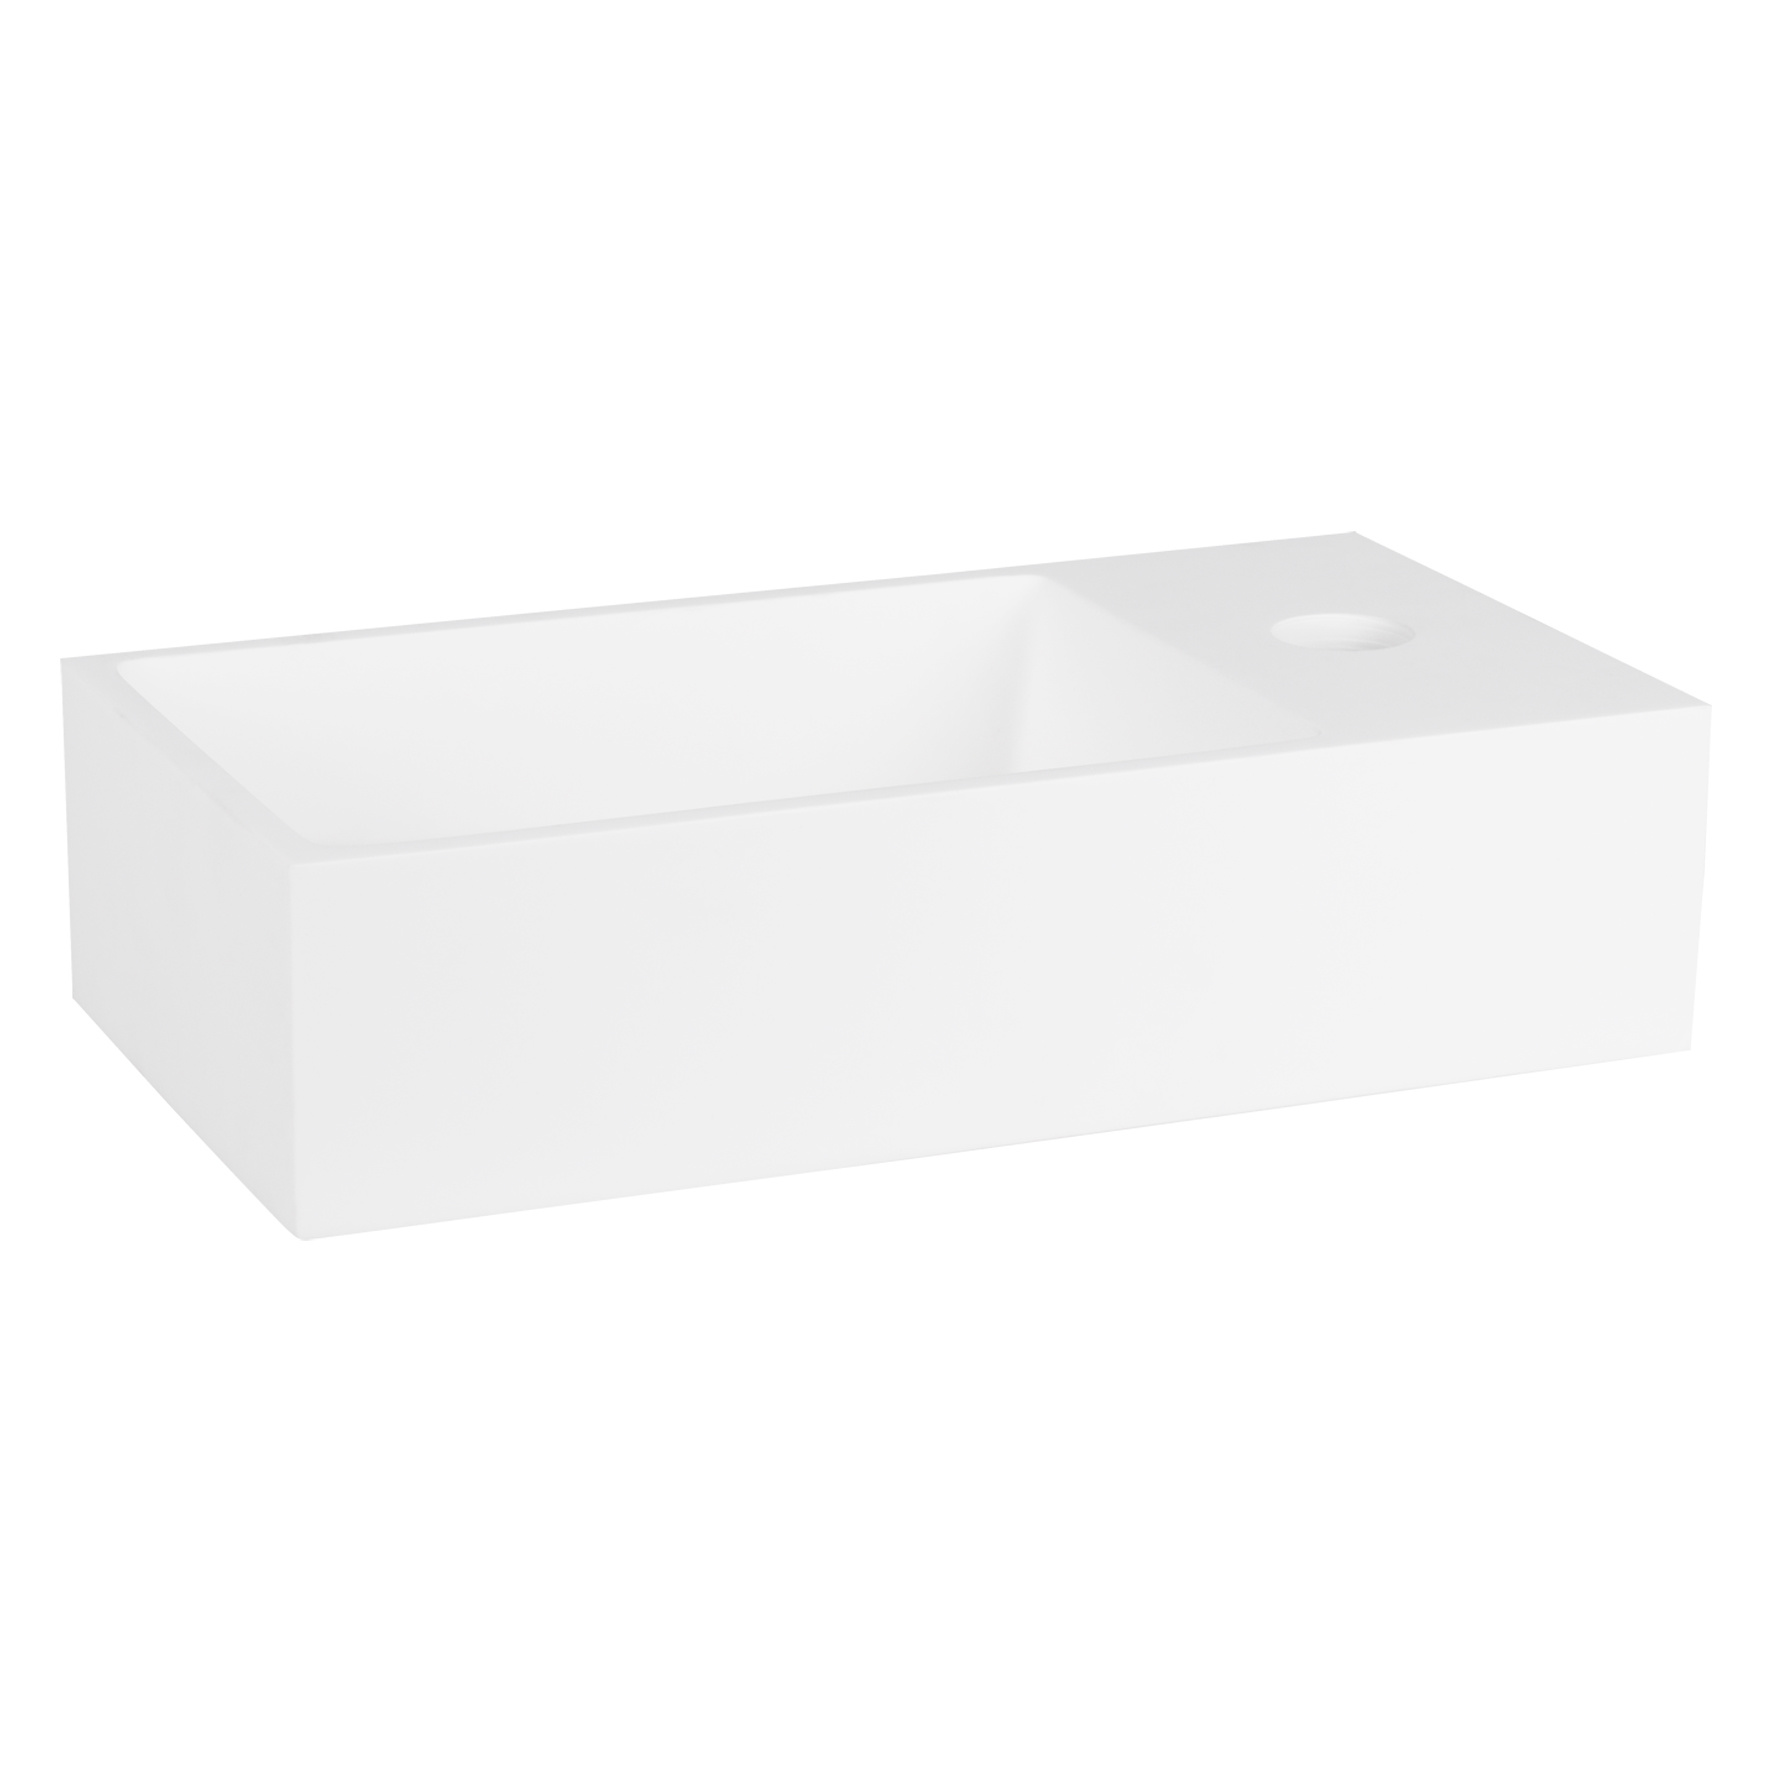 Solid fontein – Solid surface 18,5 x 36 x 9 cm-5